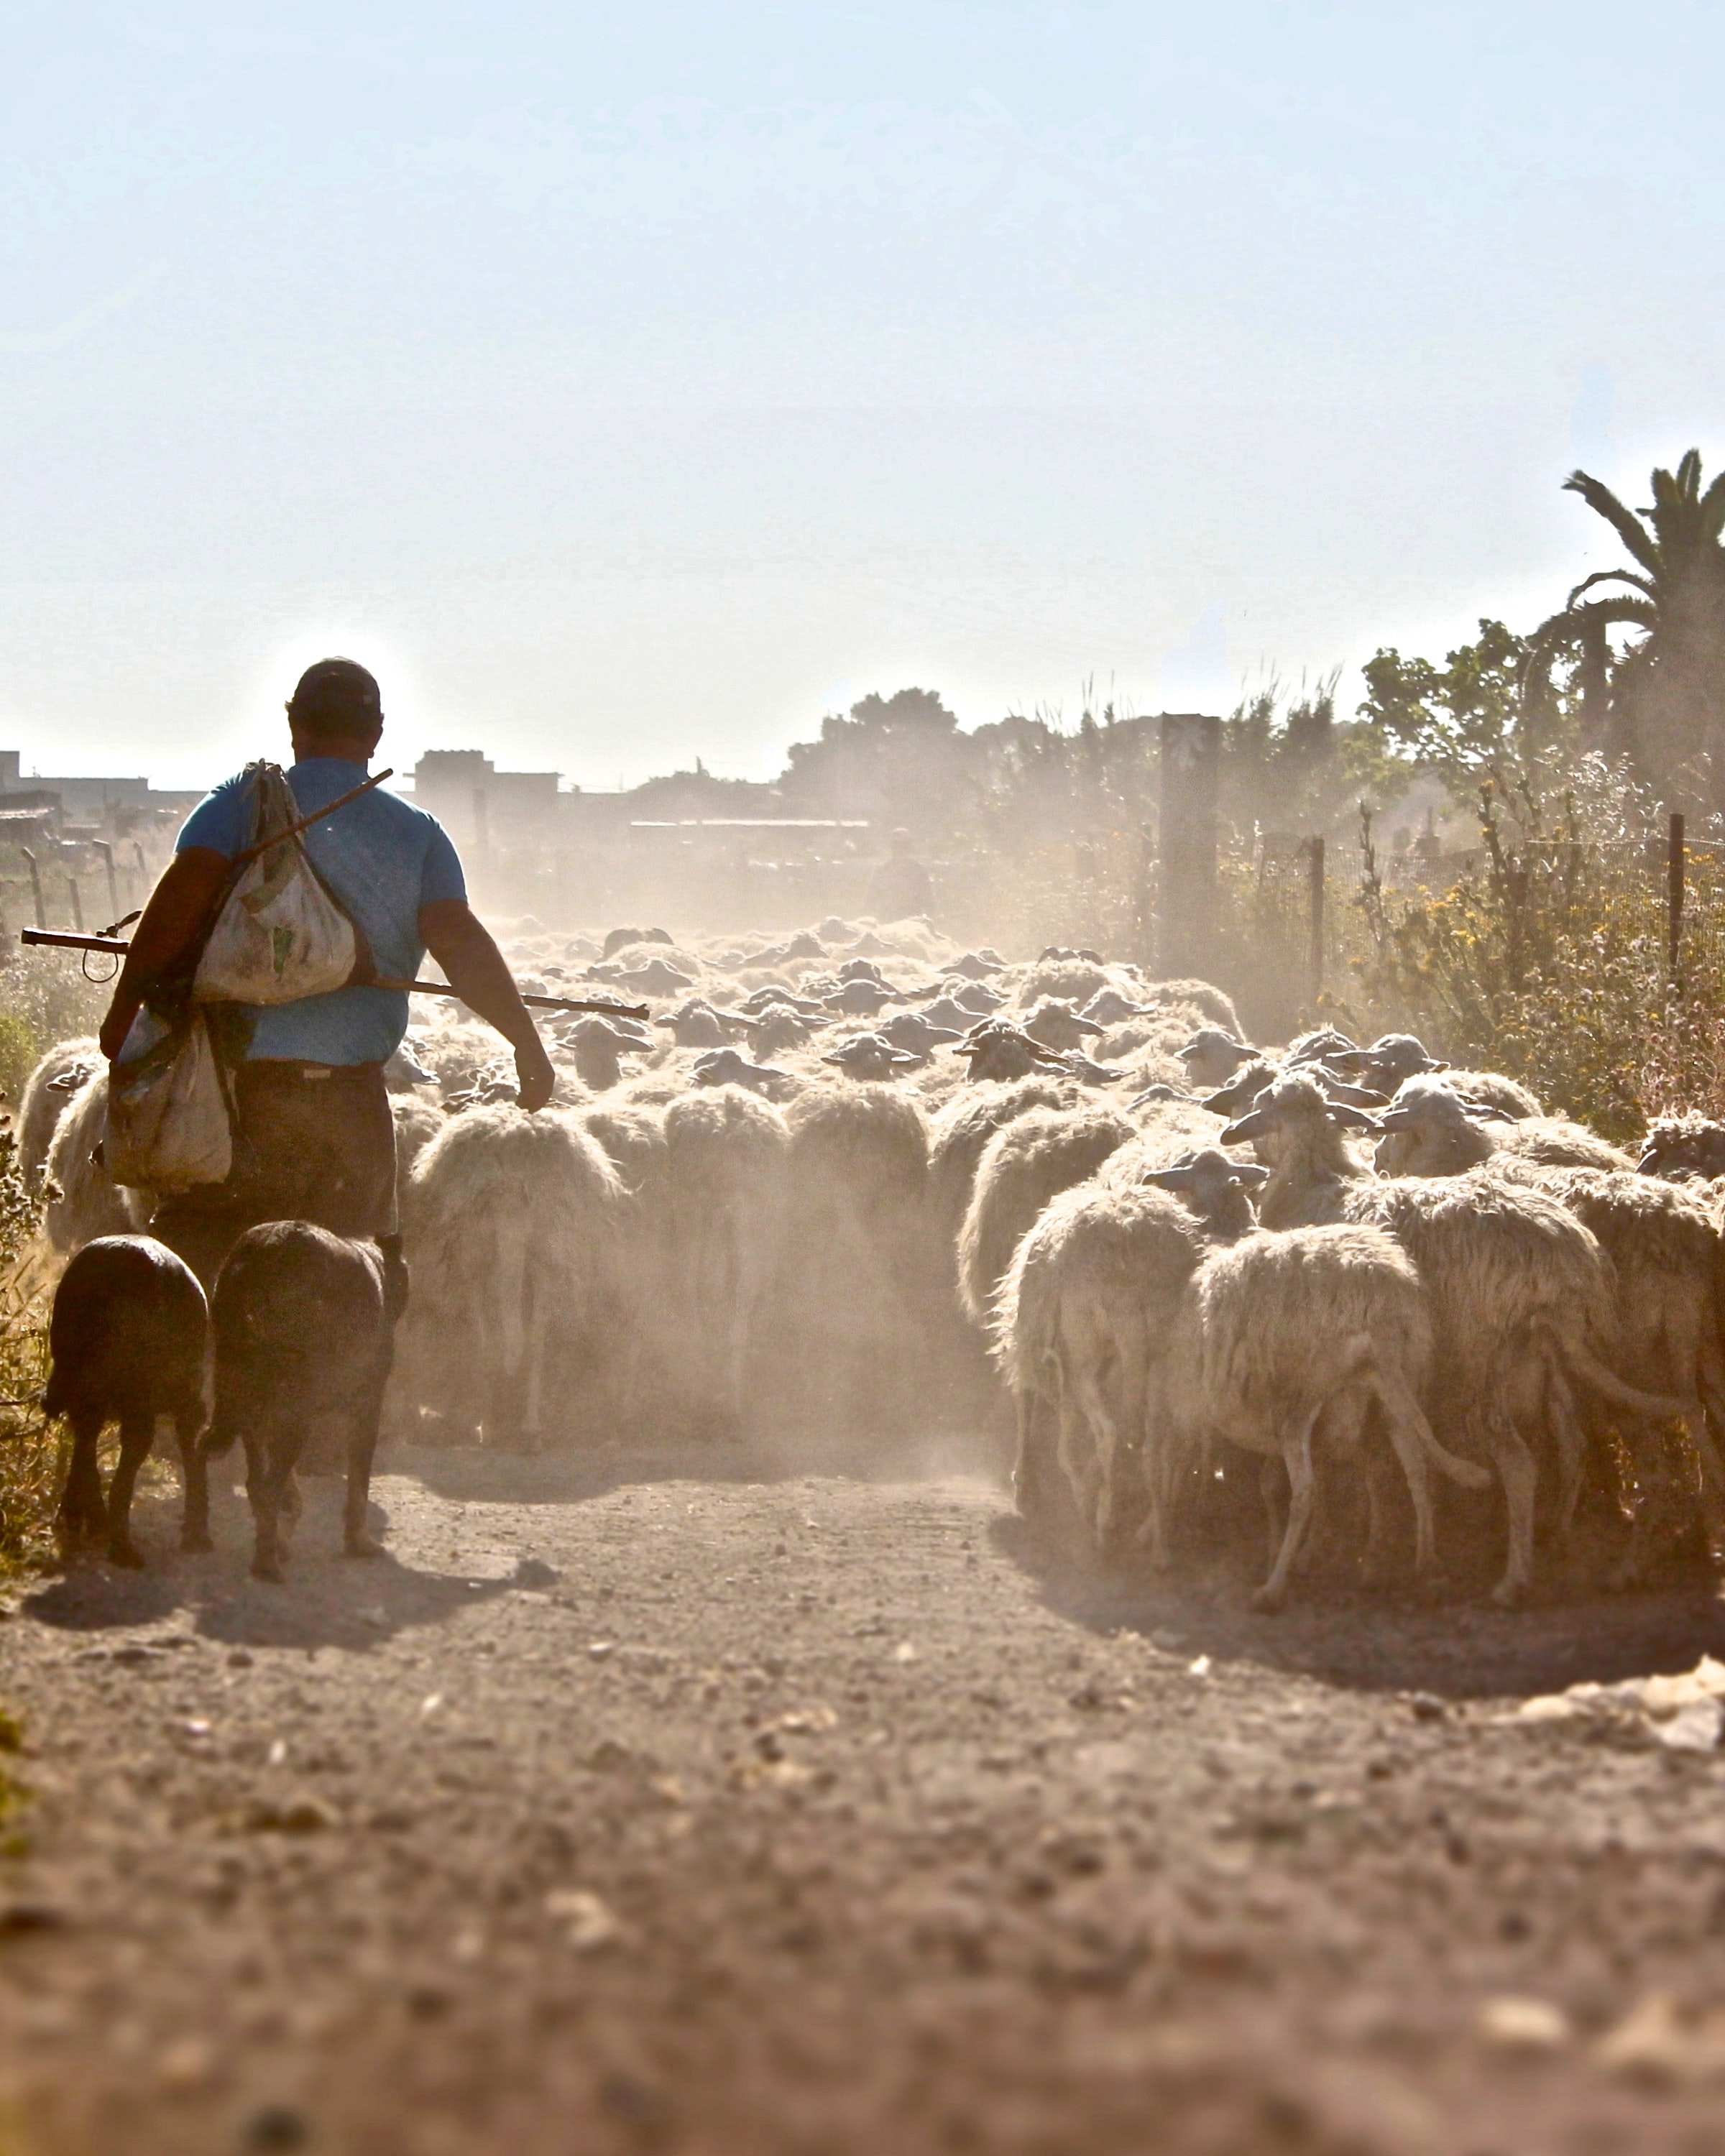 man standing at the sheeps